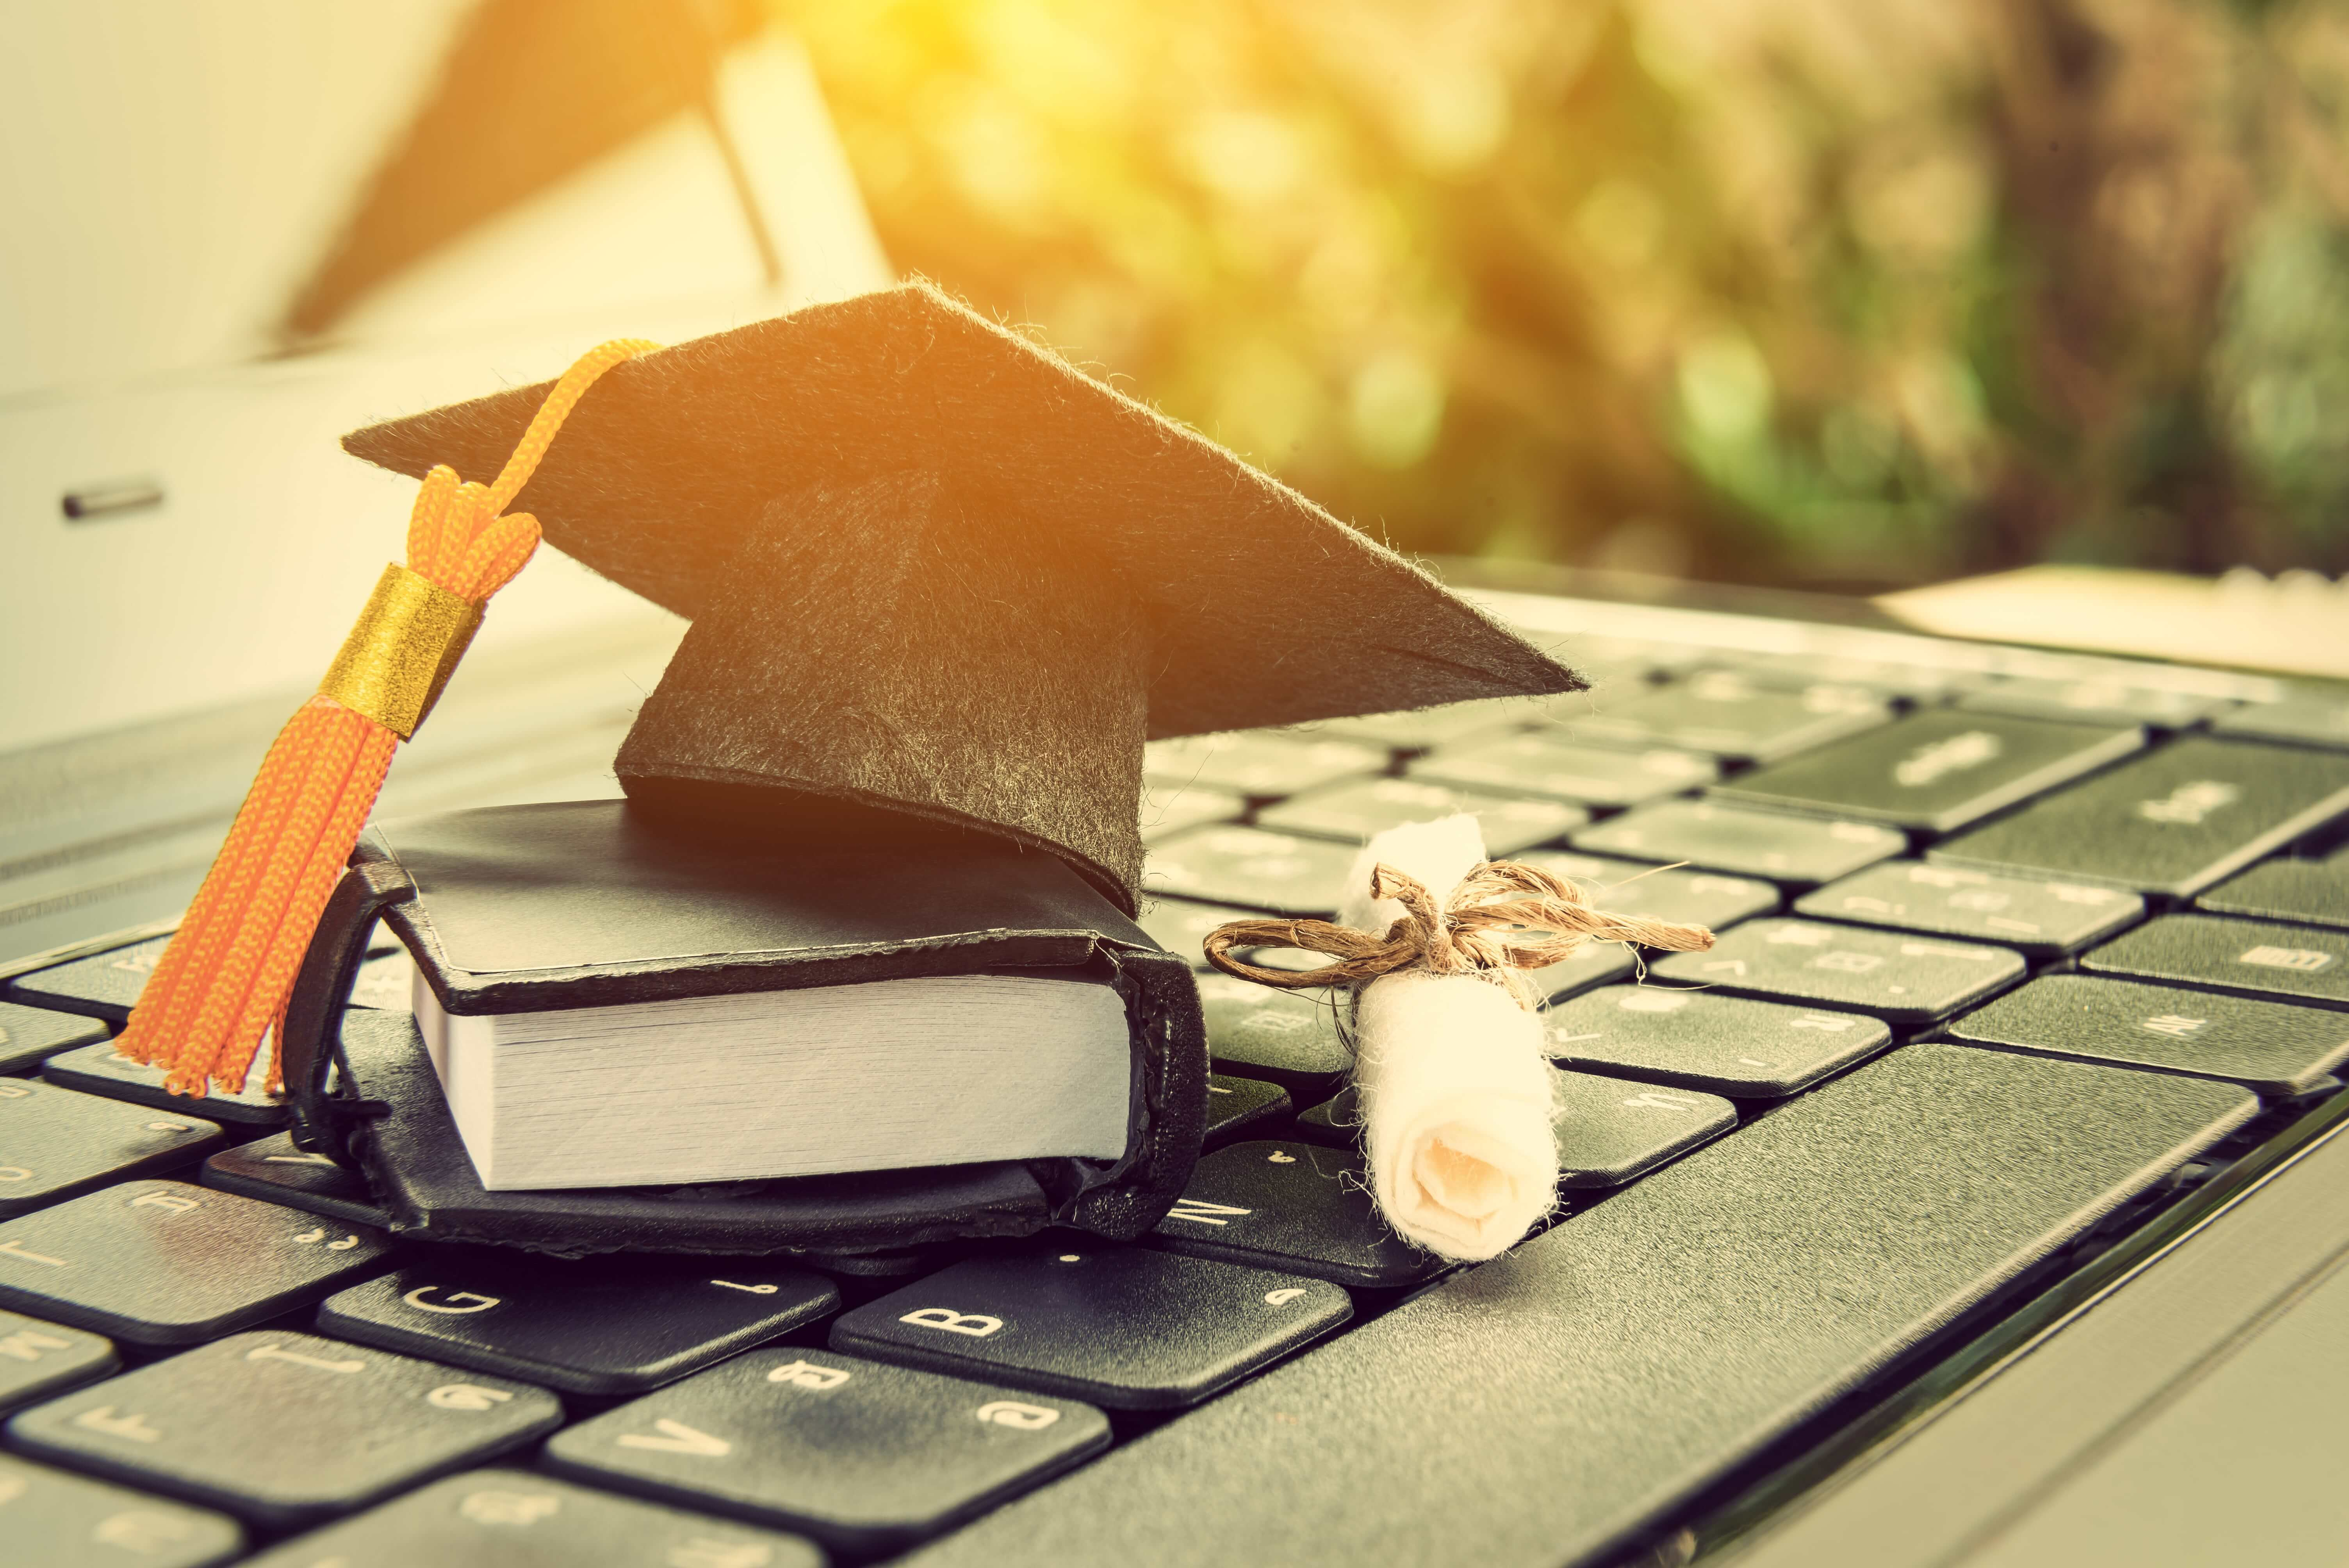 6 Key Things to Consider as Universities Plan to Go Online